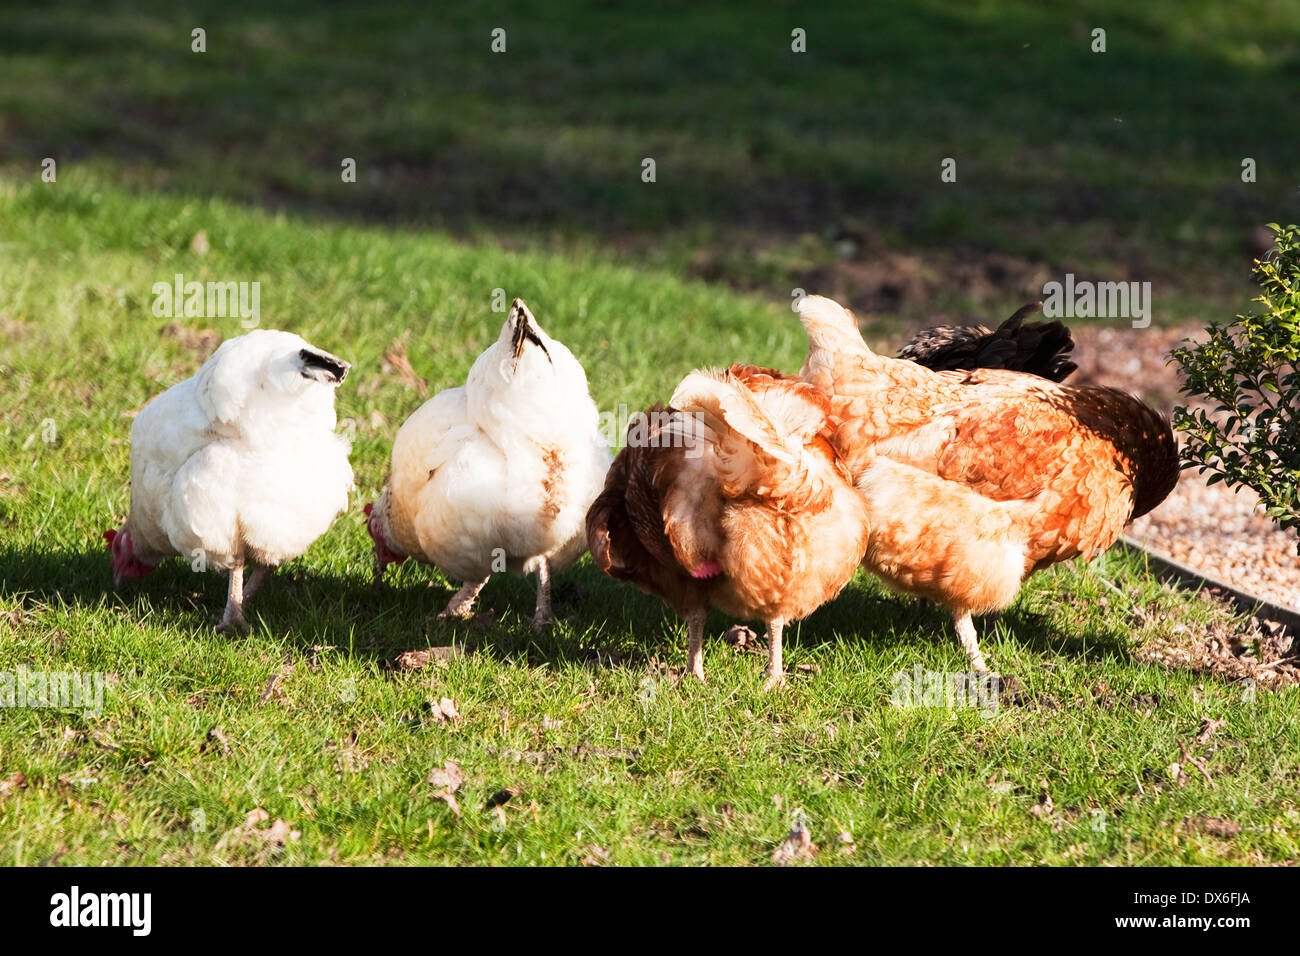 Free-range hens roaming free in English countryside, pecking in a row - Stock Image